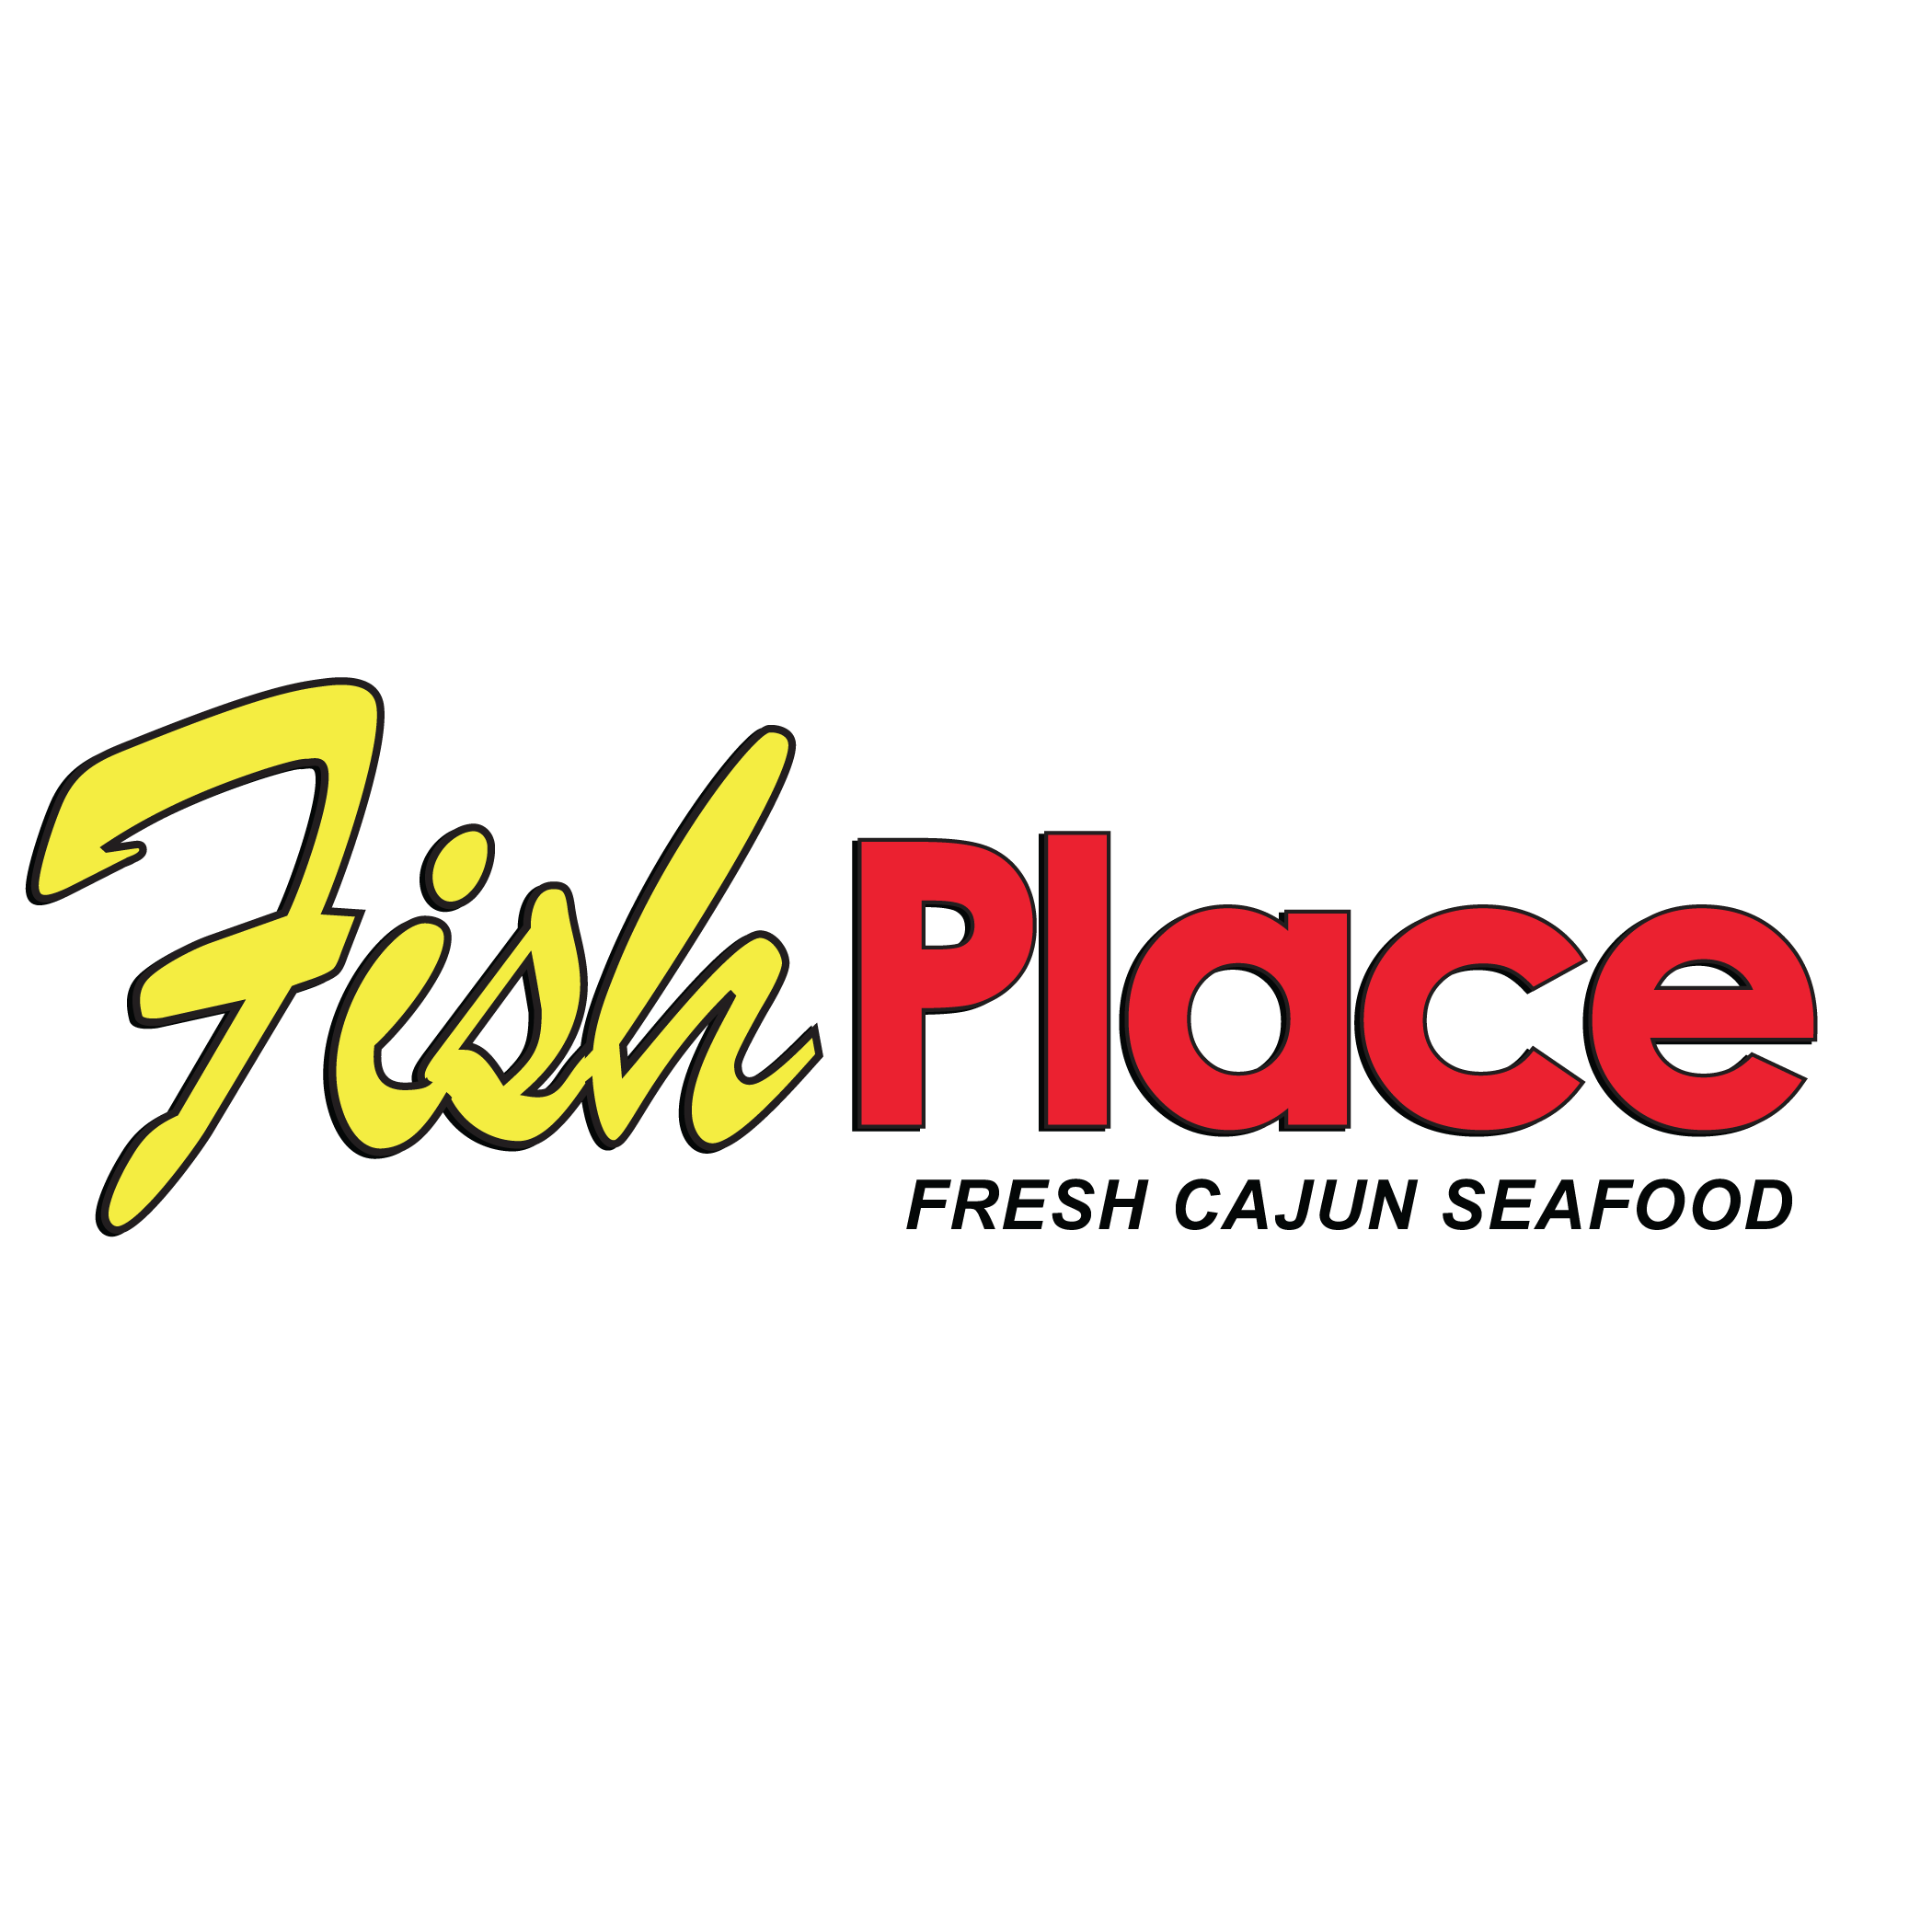 Restaurants in TX Katy 77449 Fish Place 6123 N. Fry Rd.  (281)856-0222